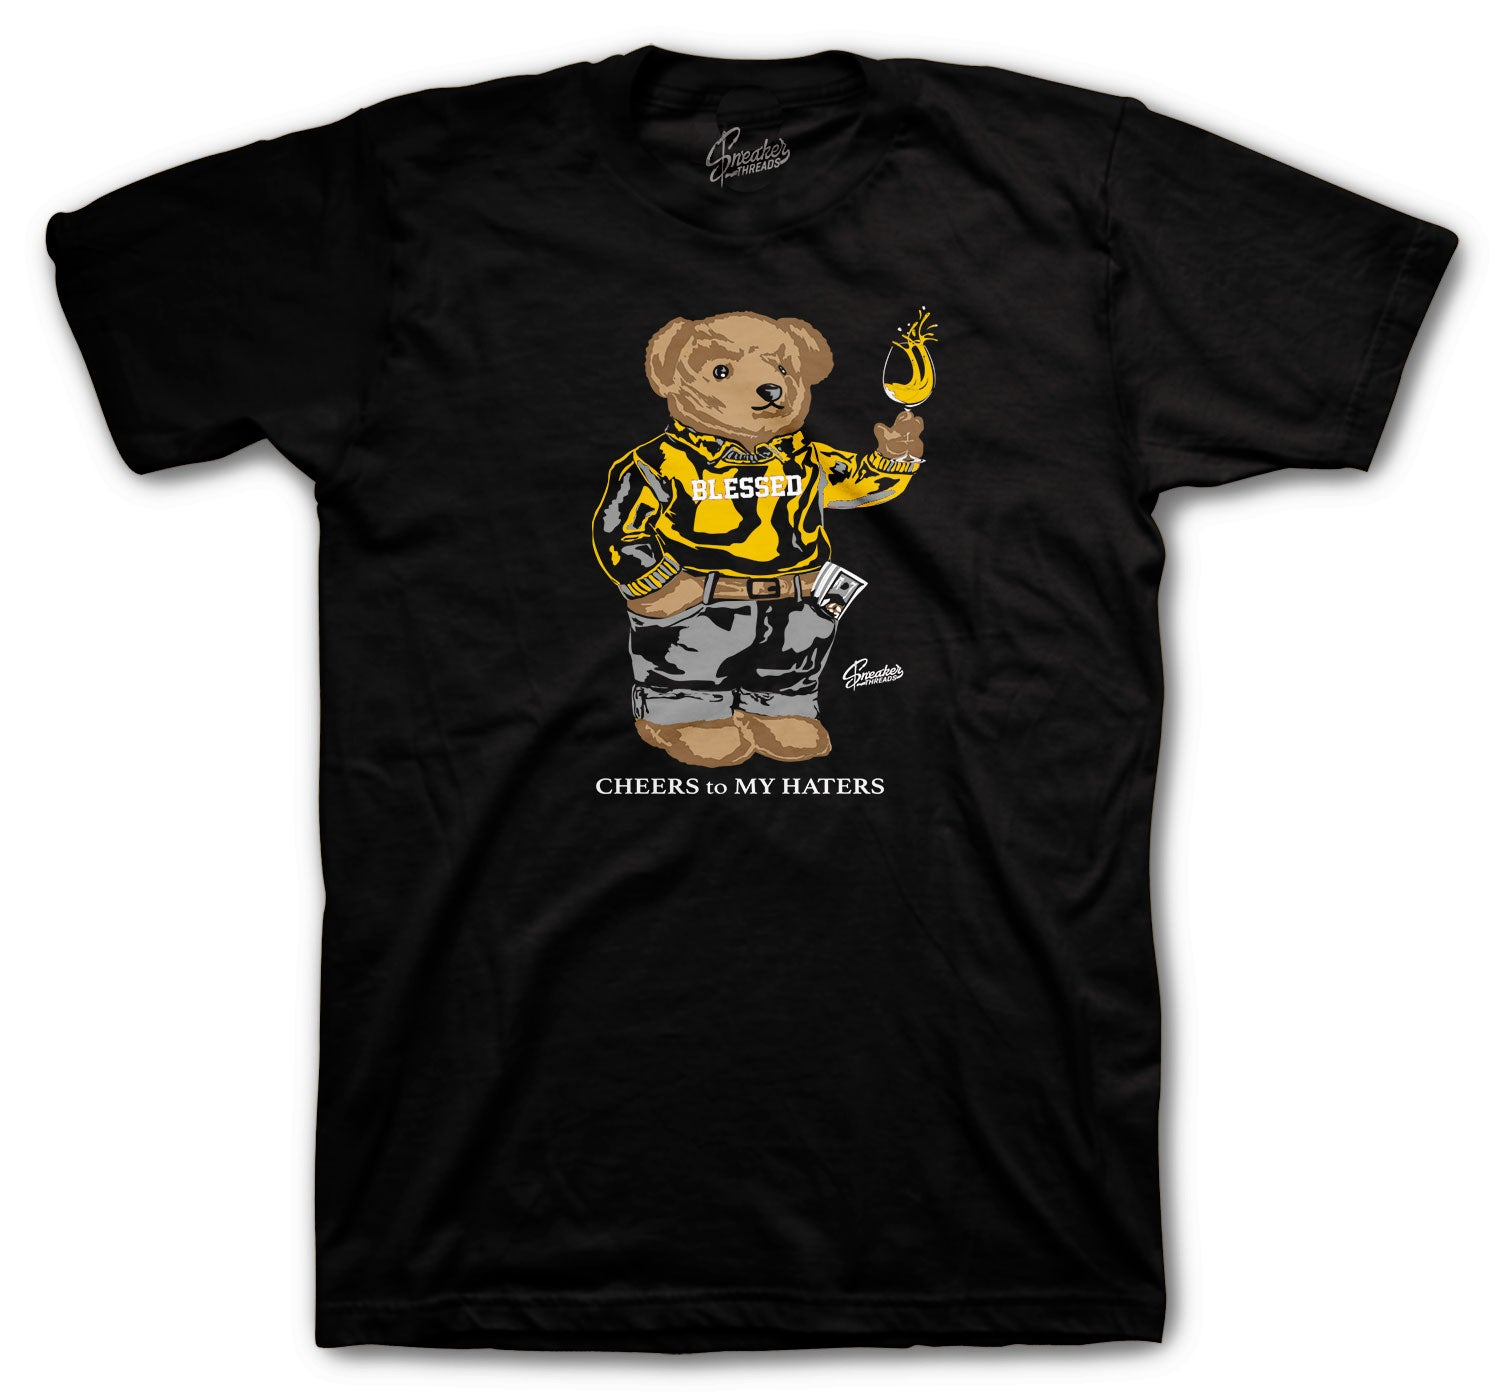 Dunk Hi Maize Cheers Bear Shirt